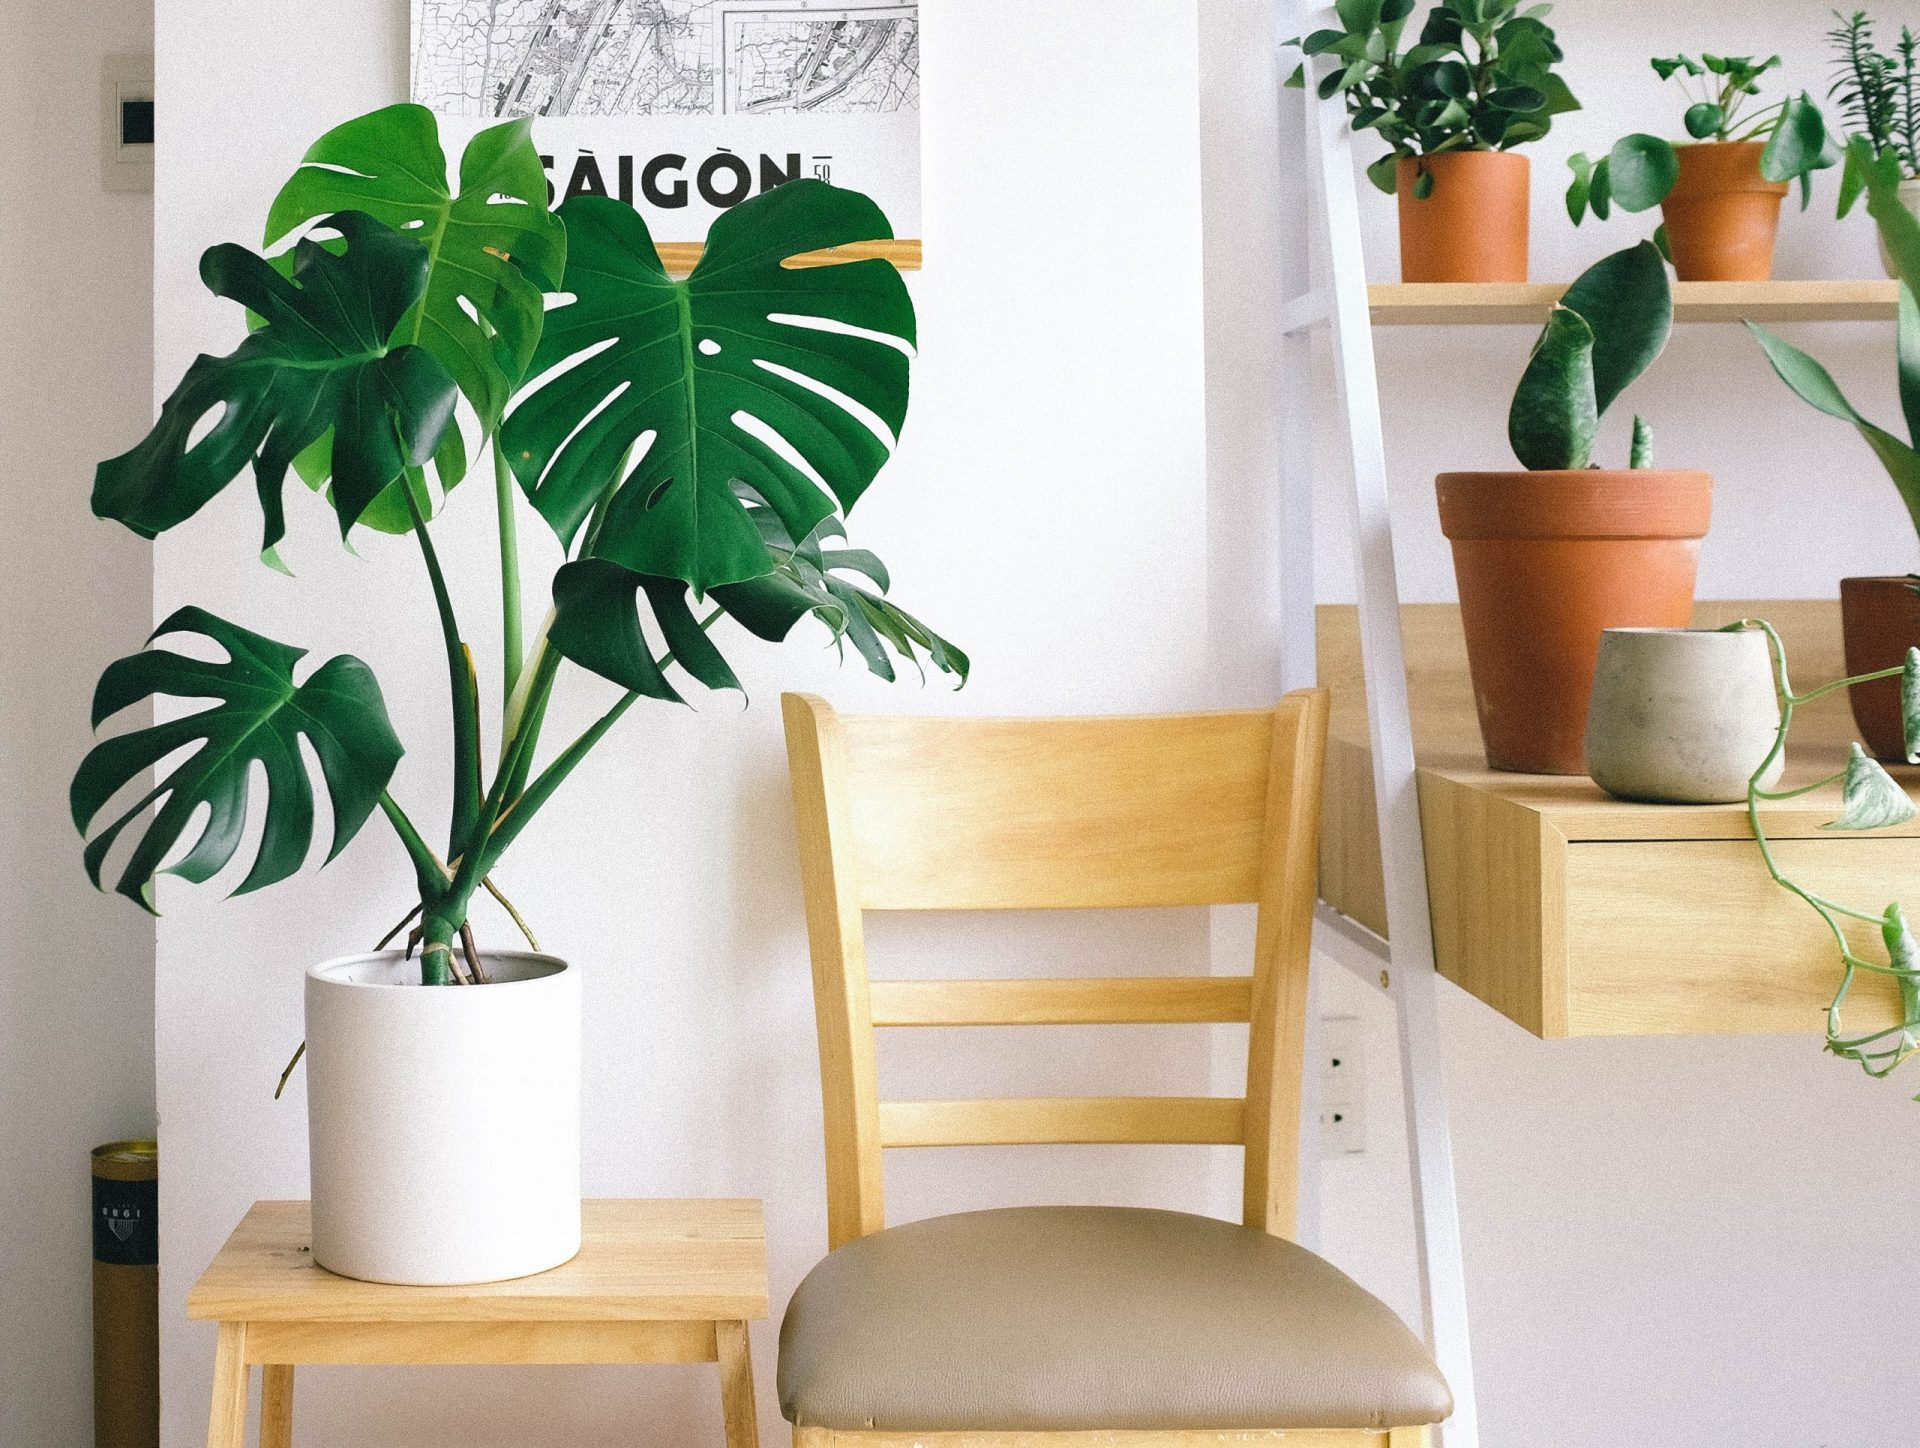 chair and plant in luxury condo | Luxury homes by brittany corporation